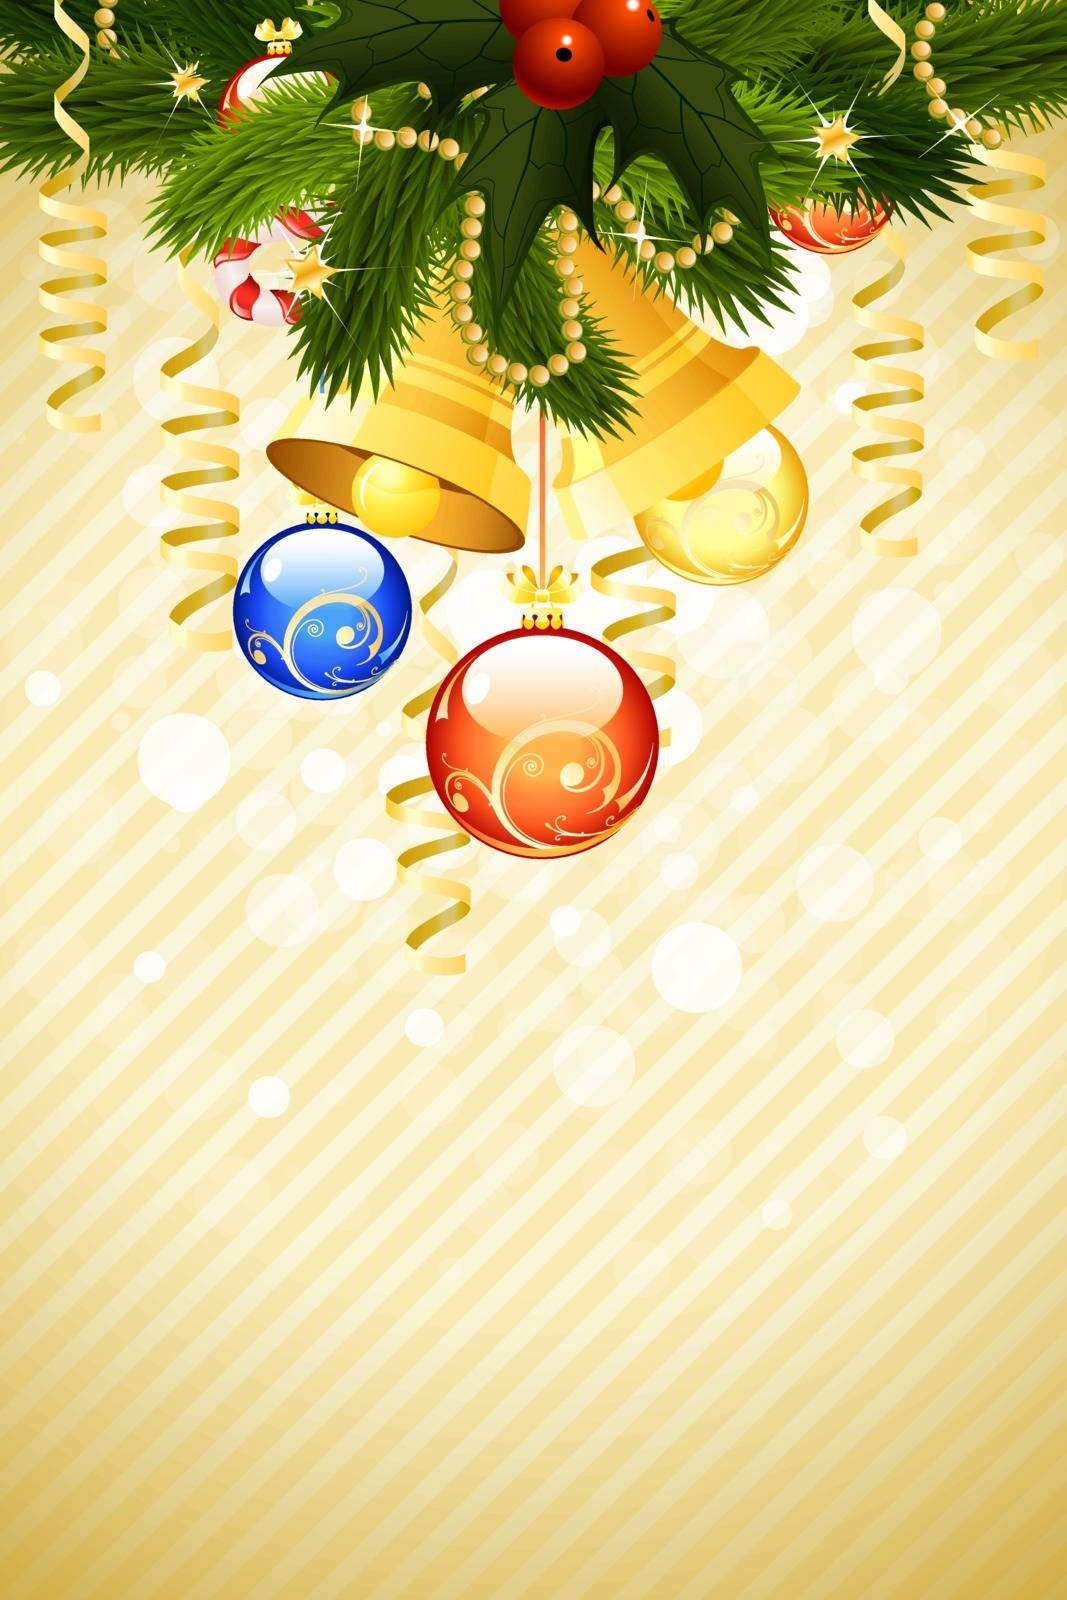 Christmas Card Template with fir-tree mistletoe decoration and bells